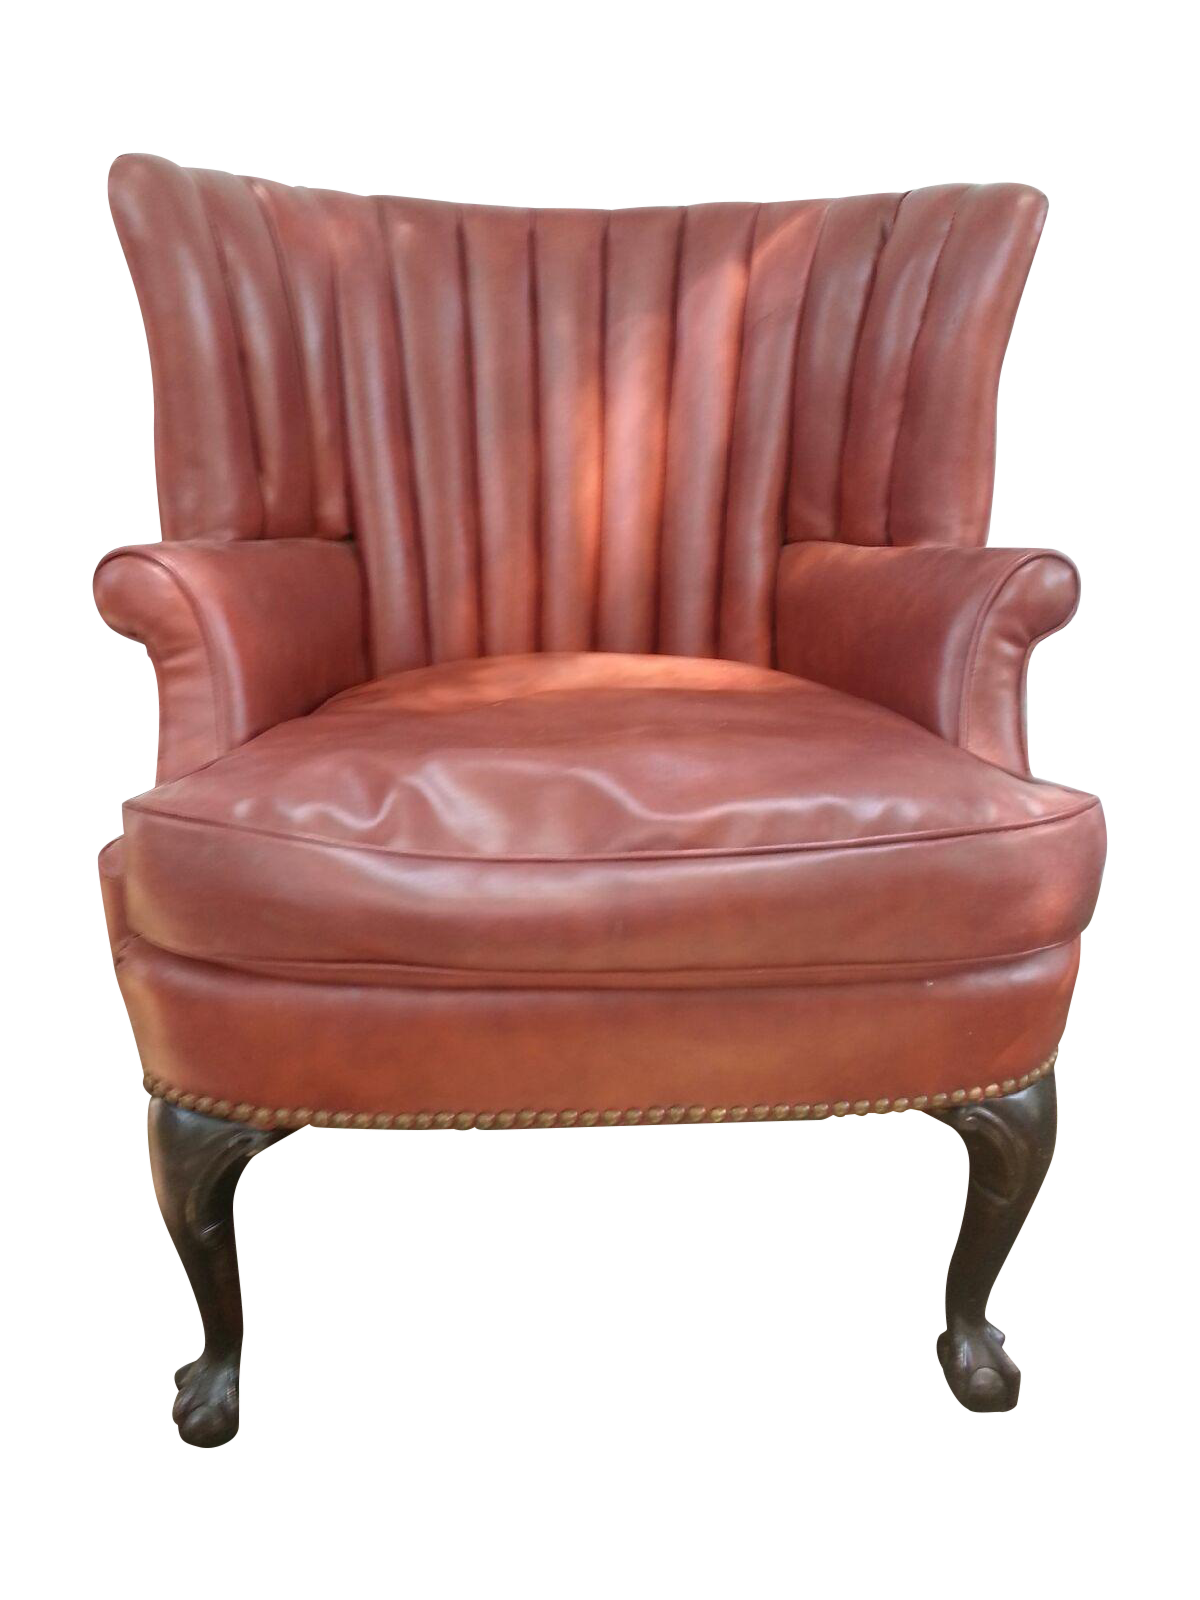 Great wing chair with ball and claw legs perfect for a small space arm height is 23 and seat height is 19 very comfortable sold